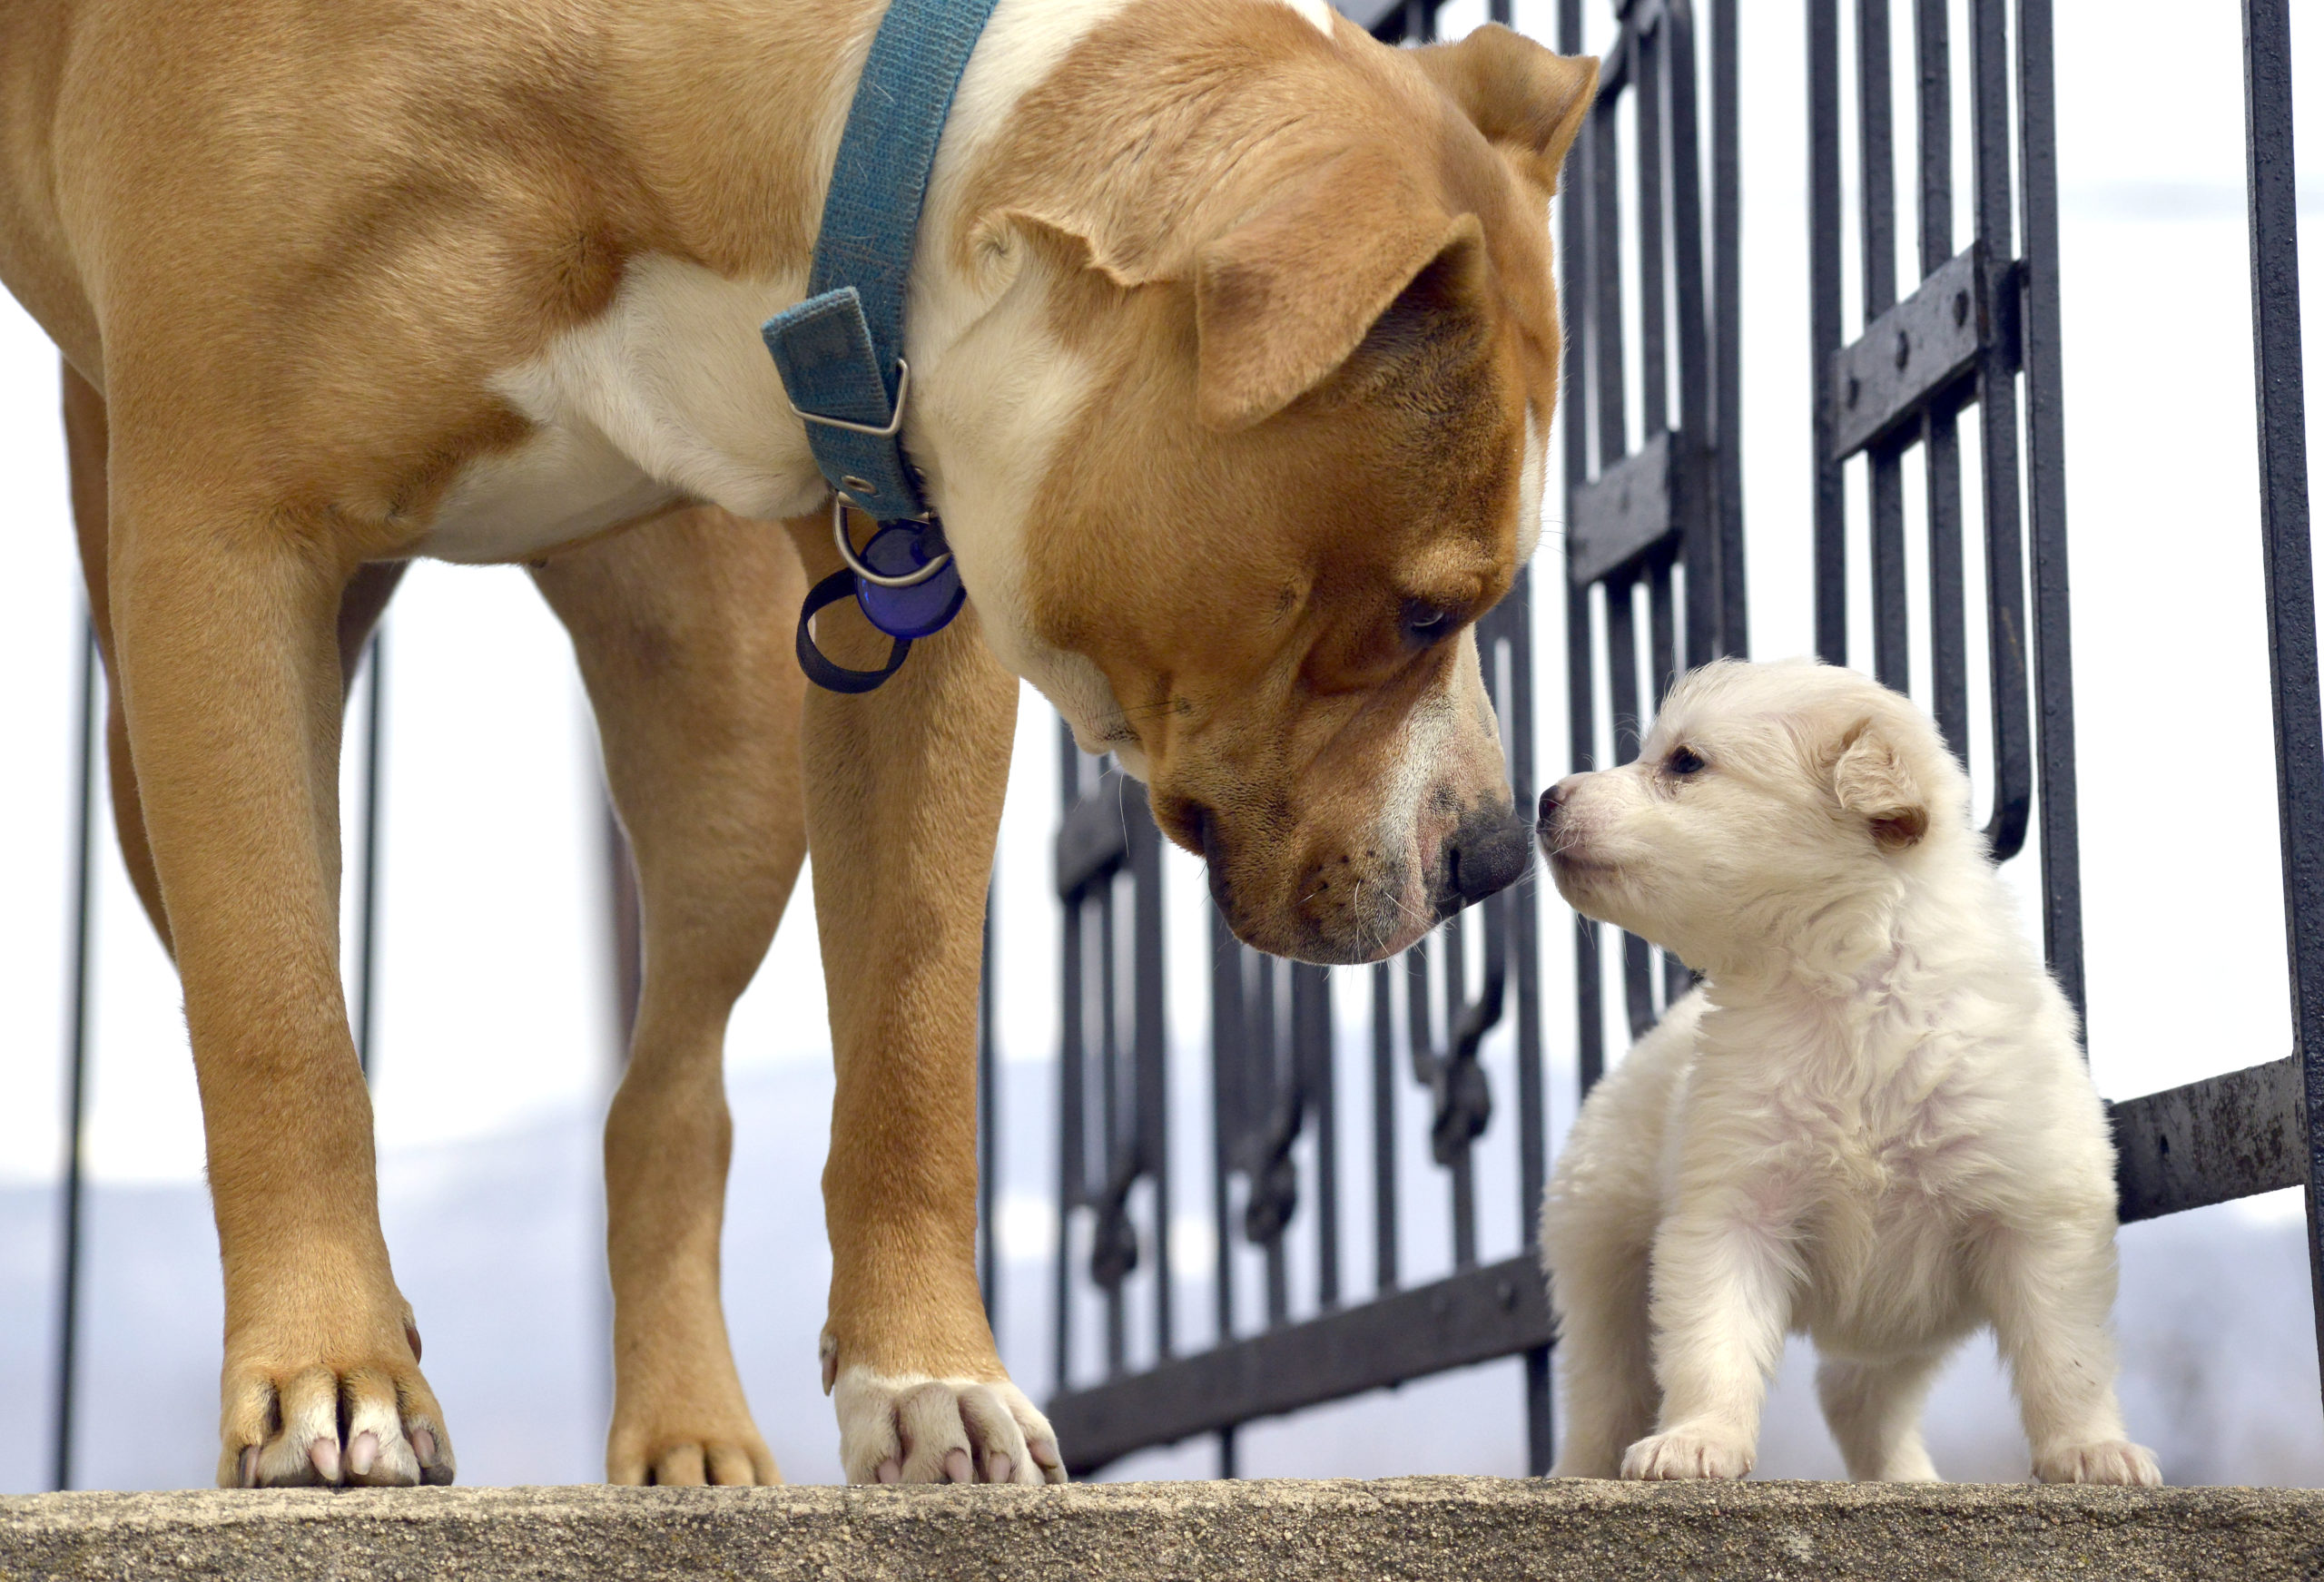 large dog sniffs small puppy on steps